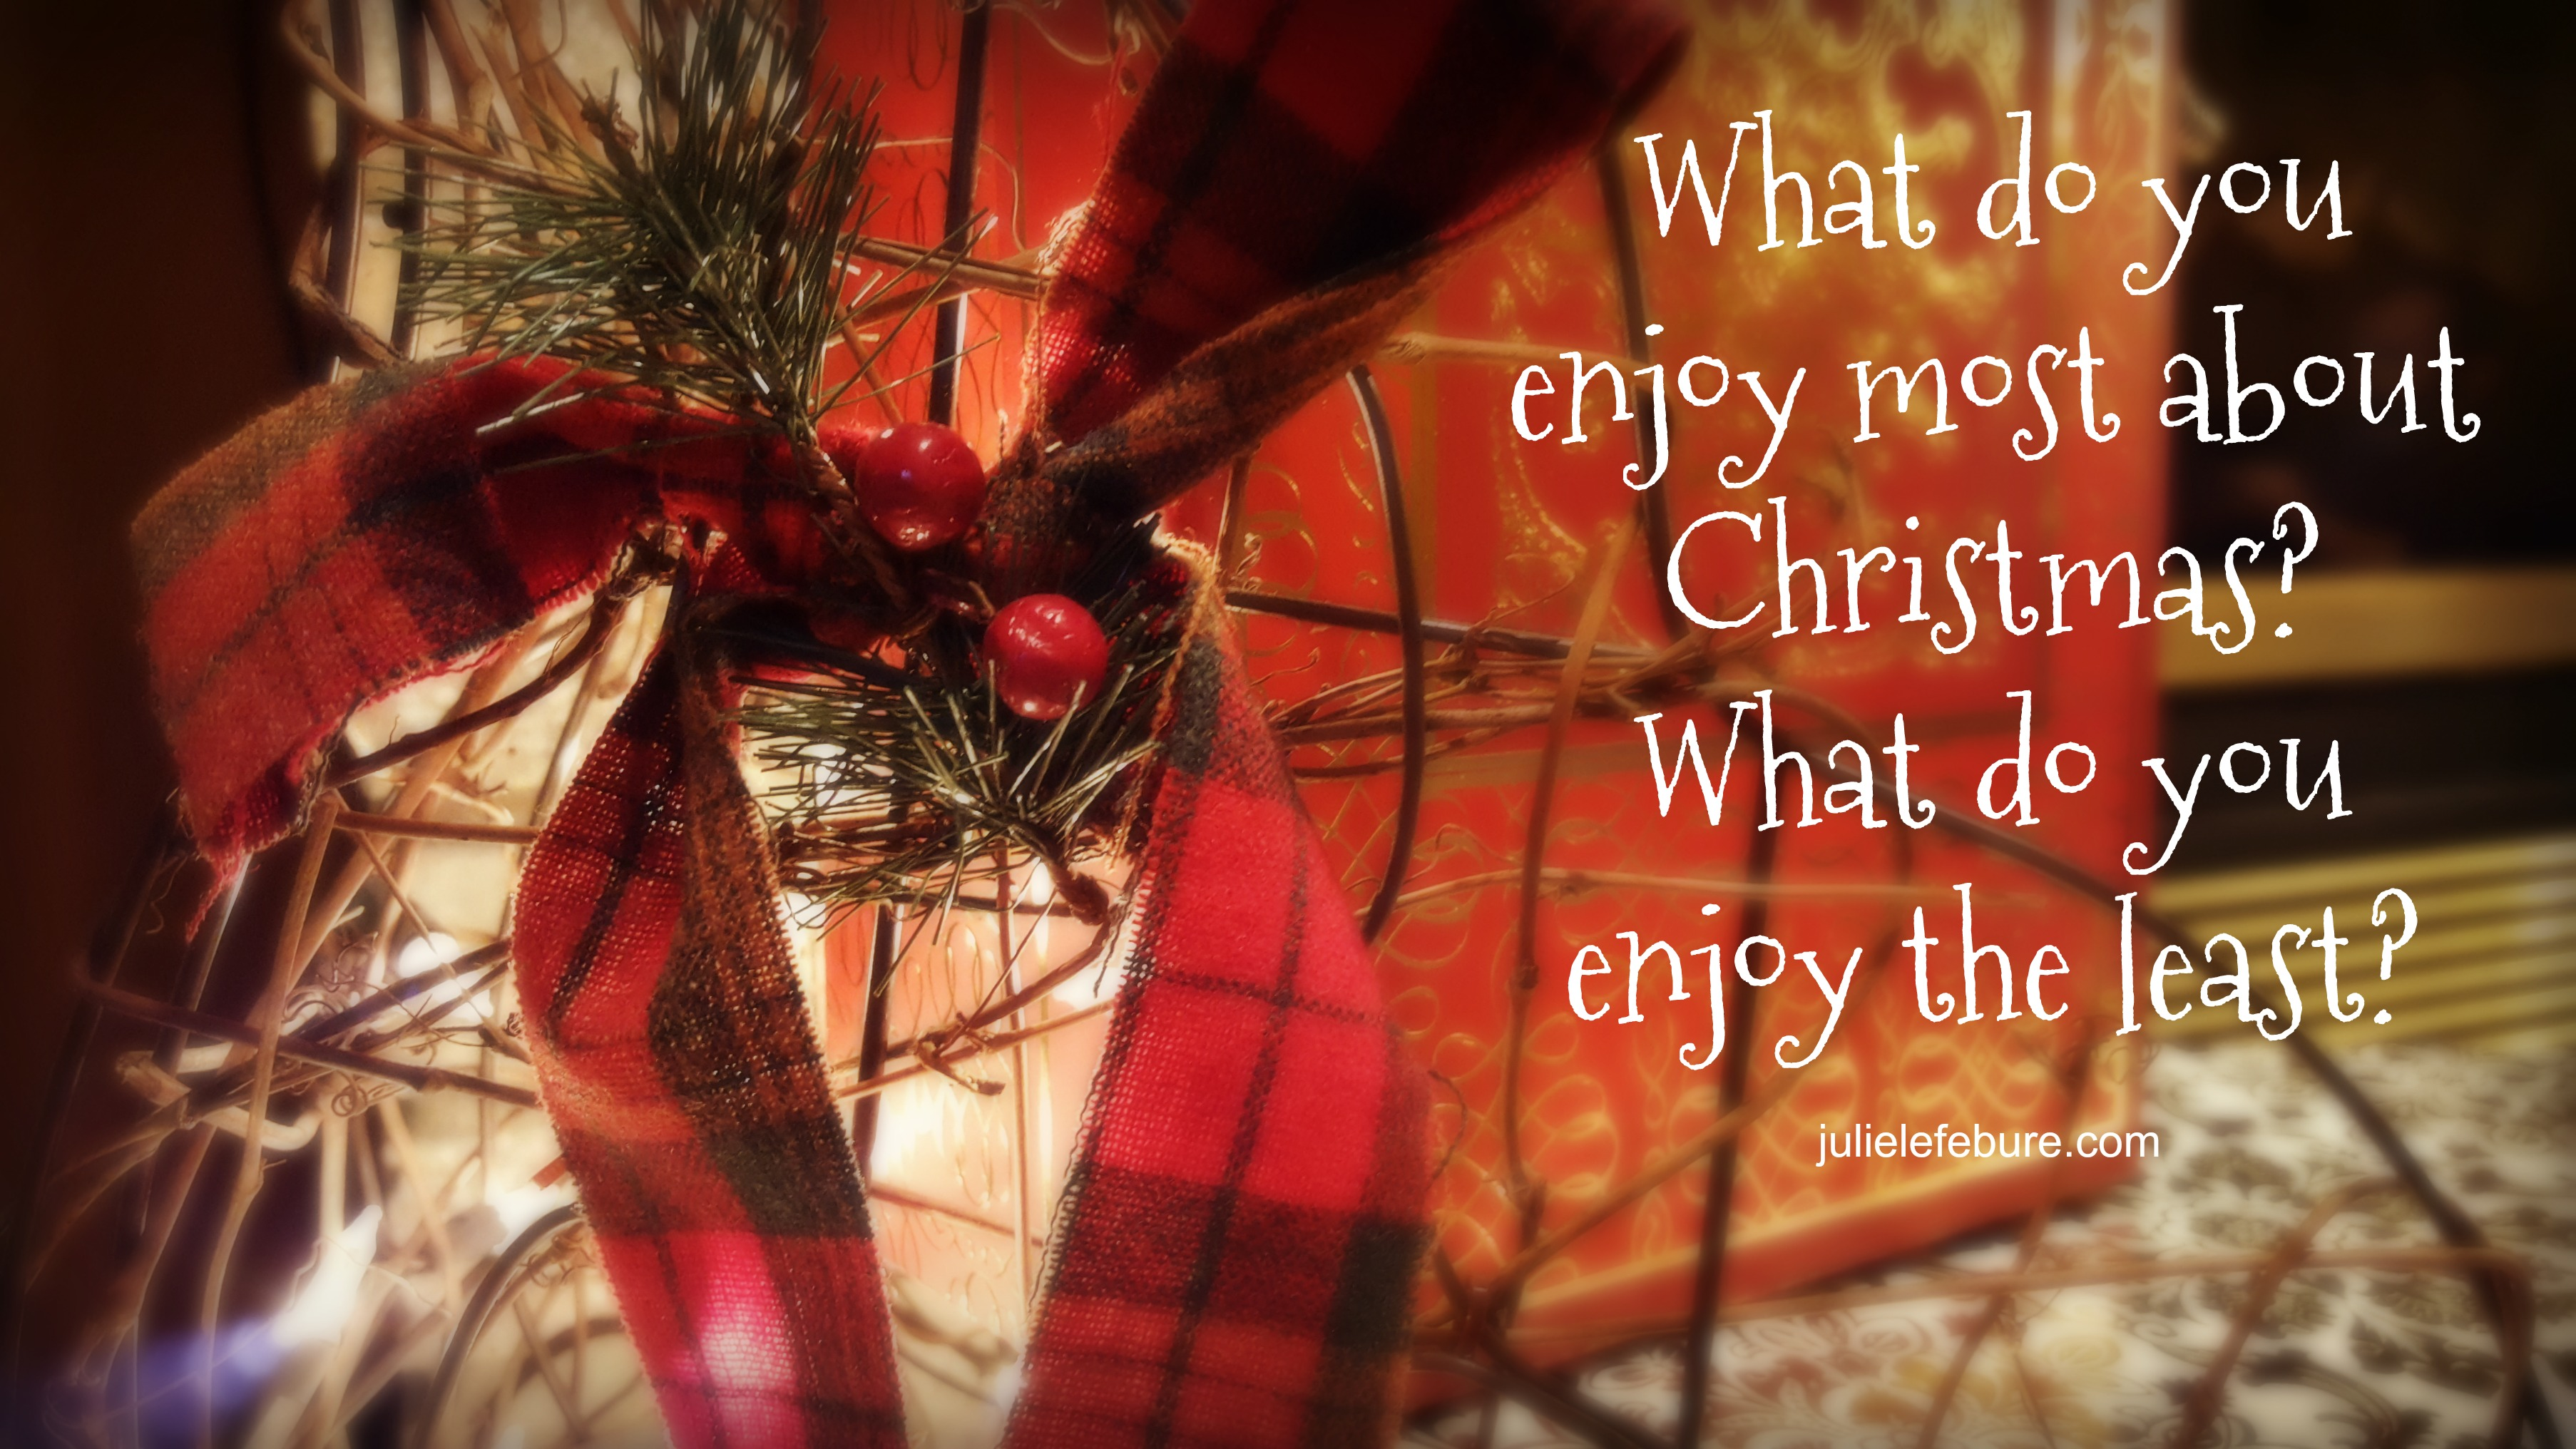 rediscovering christmas what do you enjoy most least julie two questions to answer as we rediscover christmas what do you enjoy most about christmas